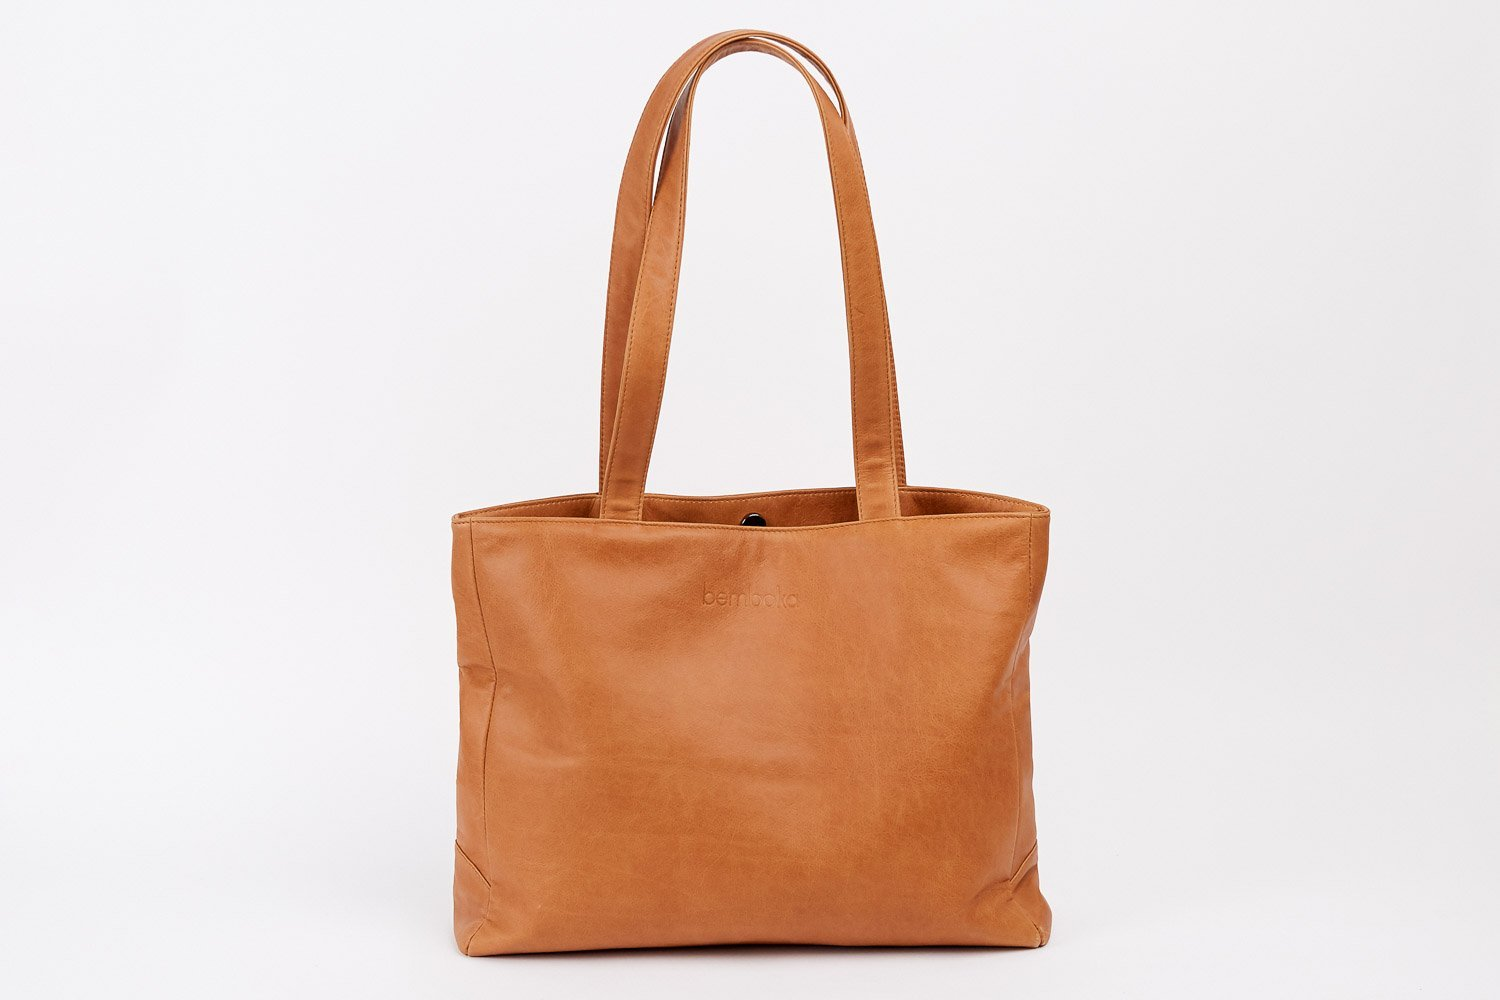 boralo tote in tan italian leather